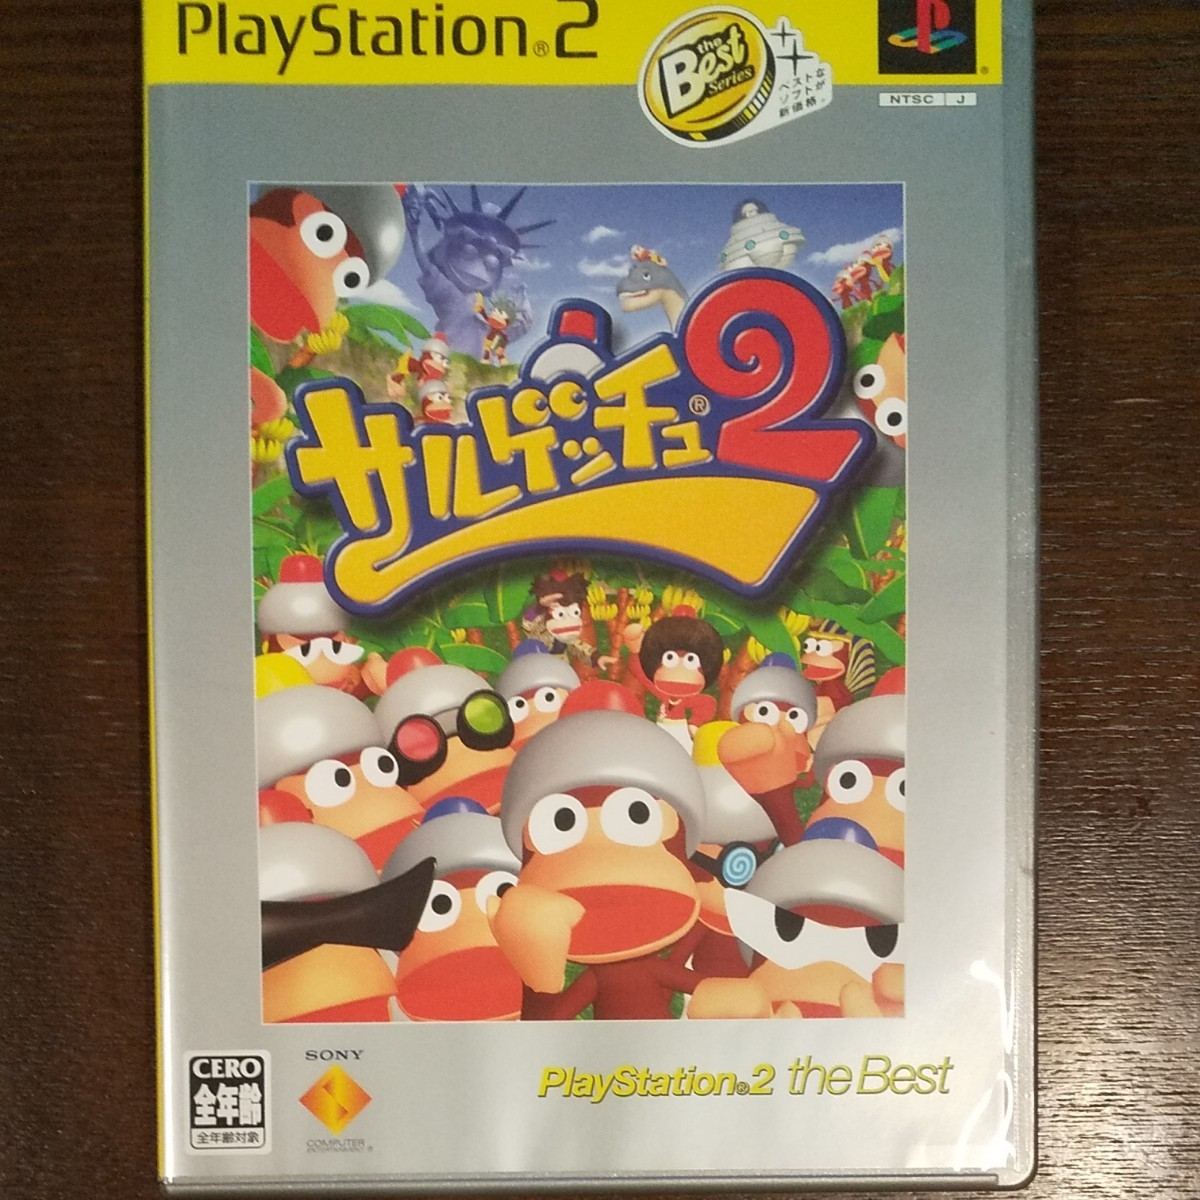 【PS2】 サルゲッチュ2 [PlayStation 2 the Best]